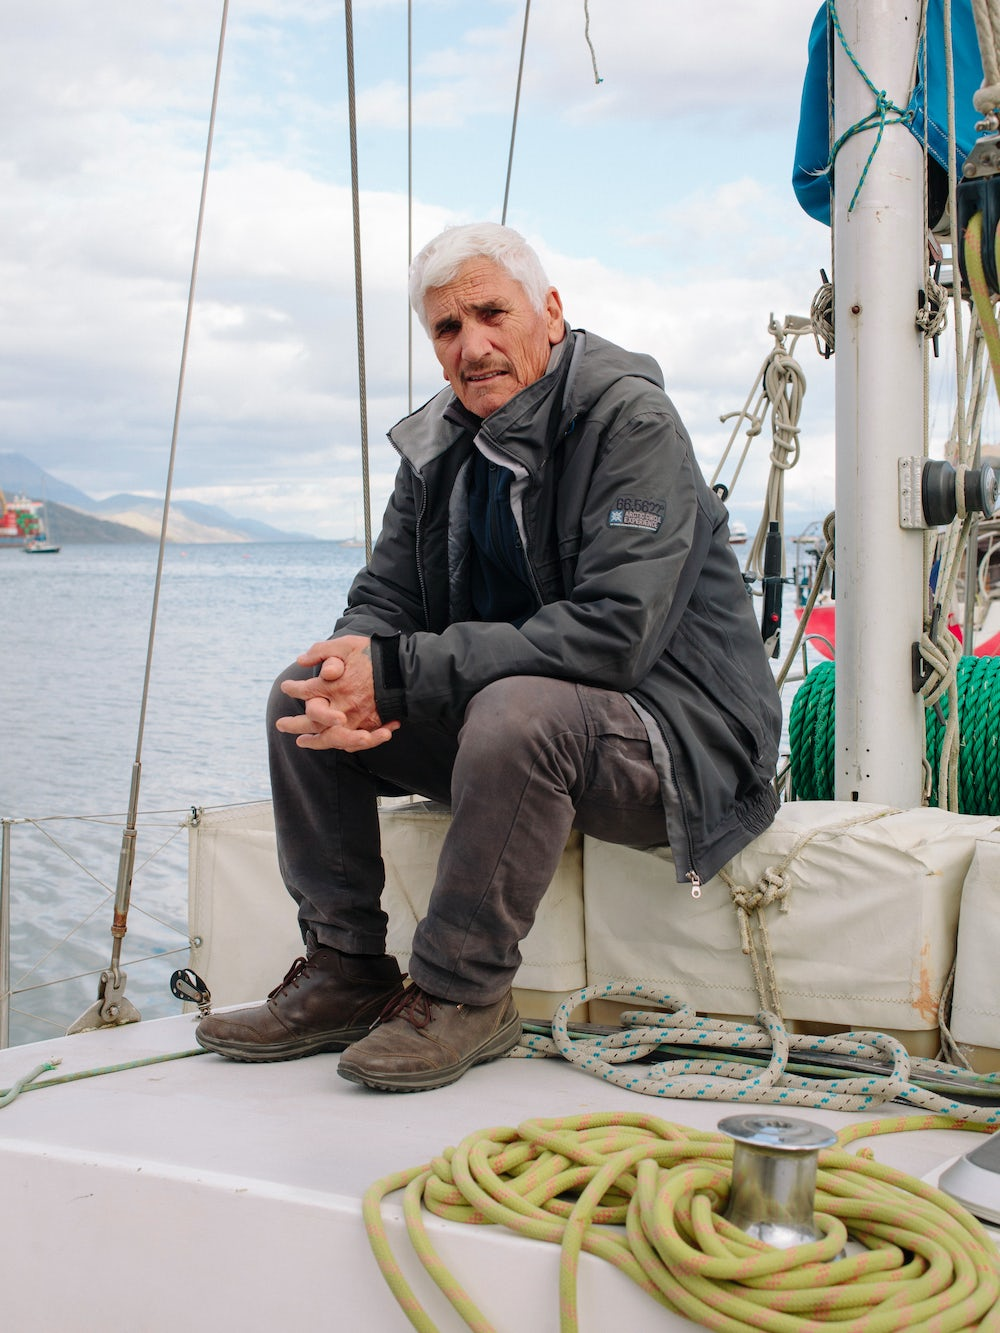 Antonio Guglielmo, an Italian skipper, offers tourist cruises to Antartica and Cape Horn Island on his 46-foot sailing boat.